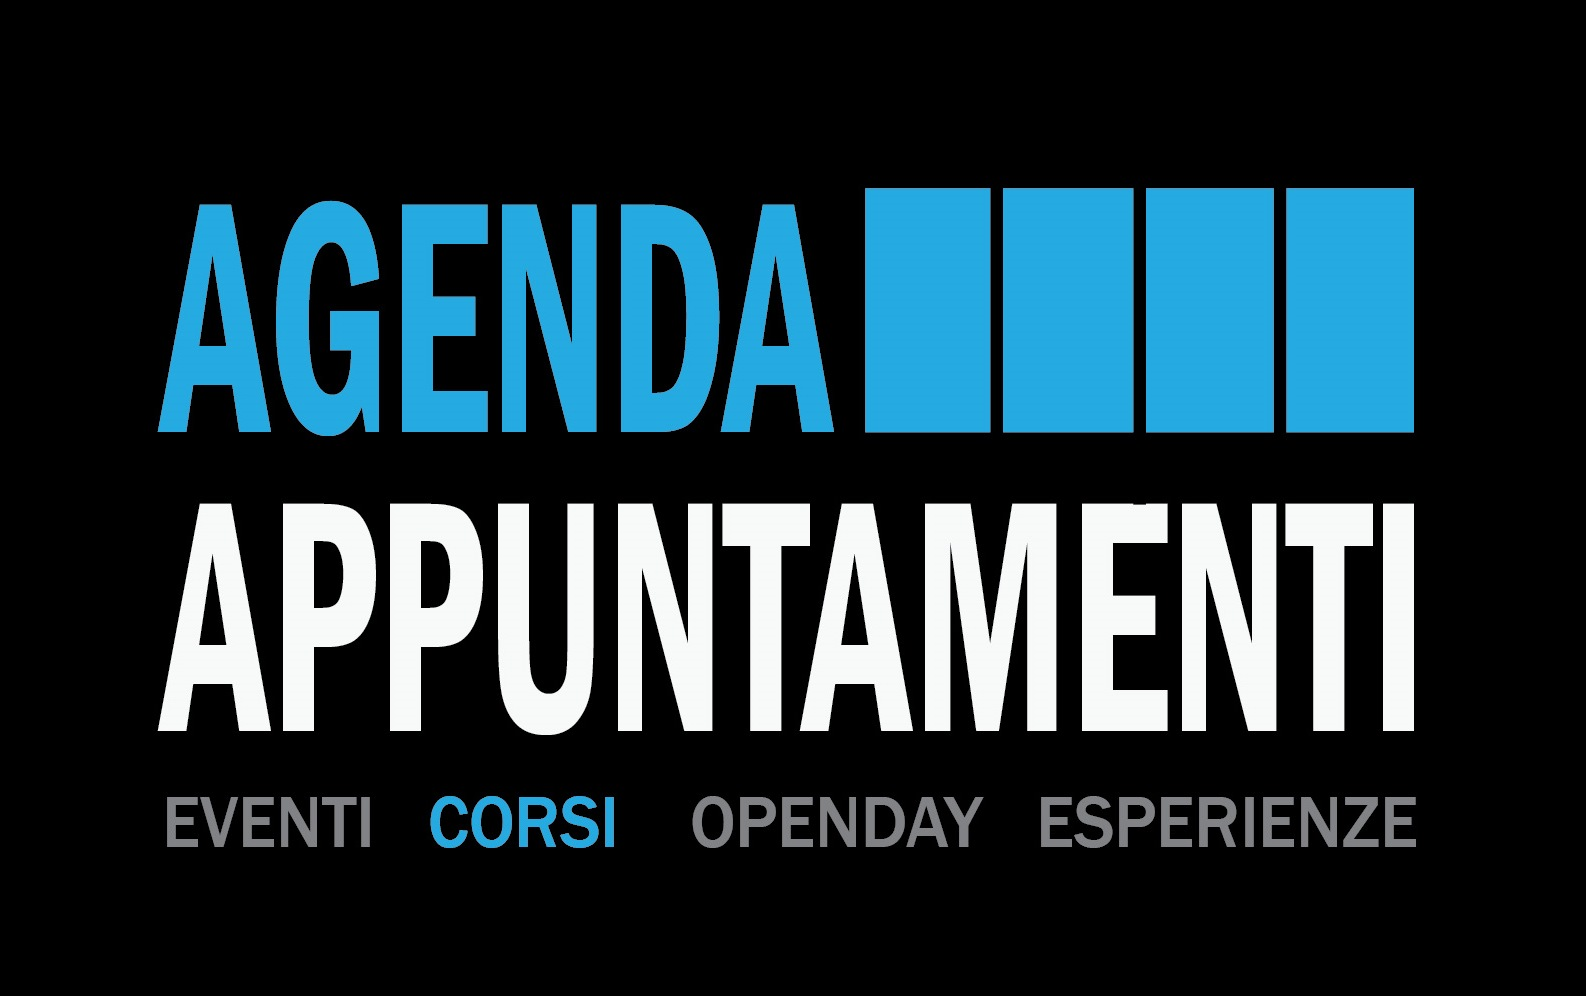 Agenda 2013